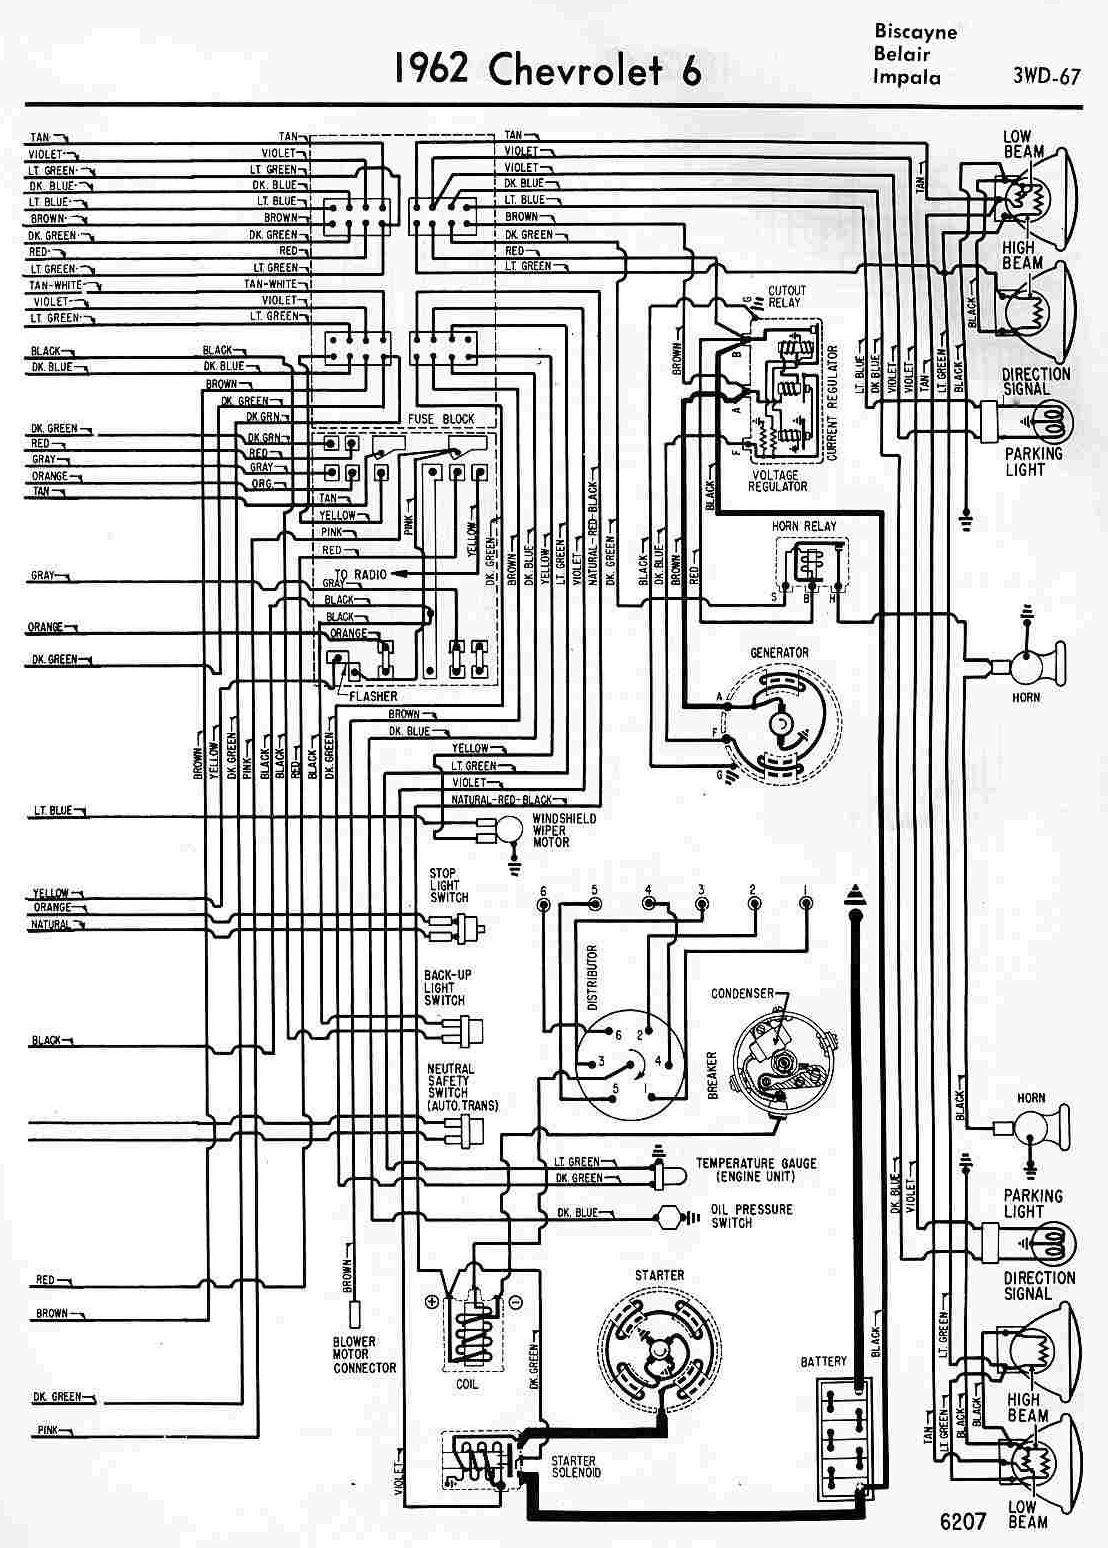 1963 impala electrical diagram wiring diagram Chevelle Wiring Diagram